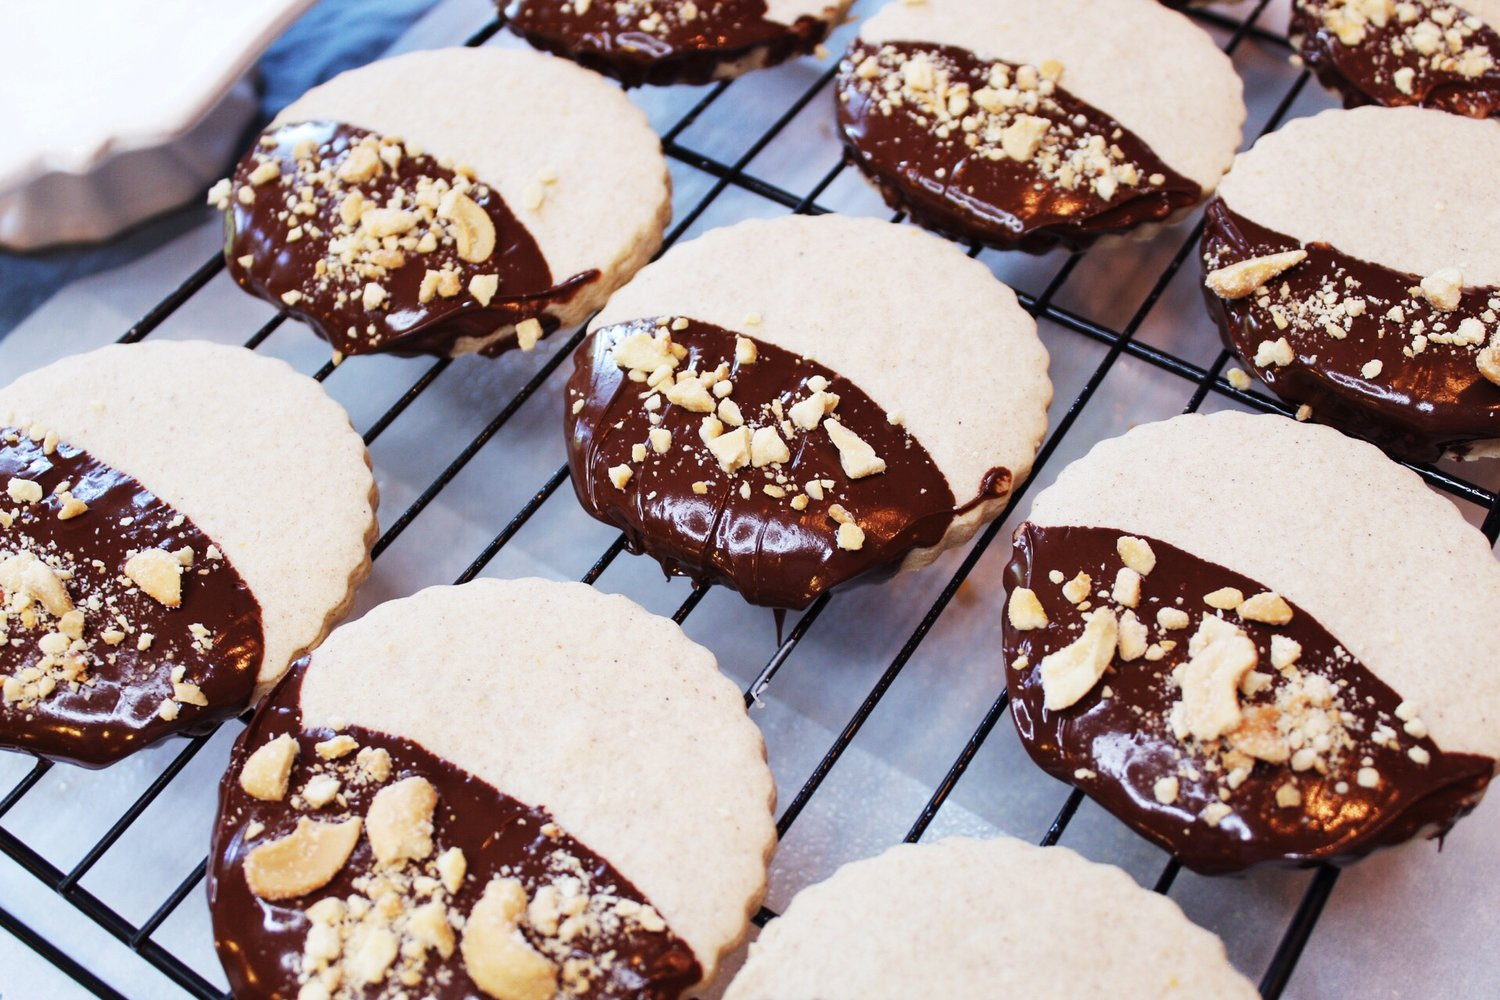 Chocolate-dipped+spice+cookies.jpeg